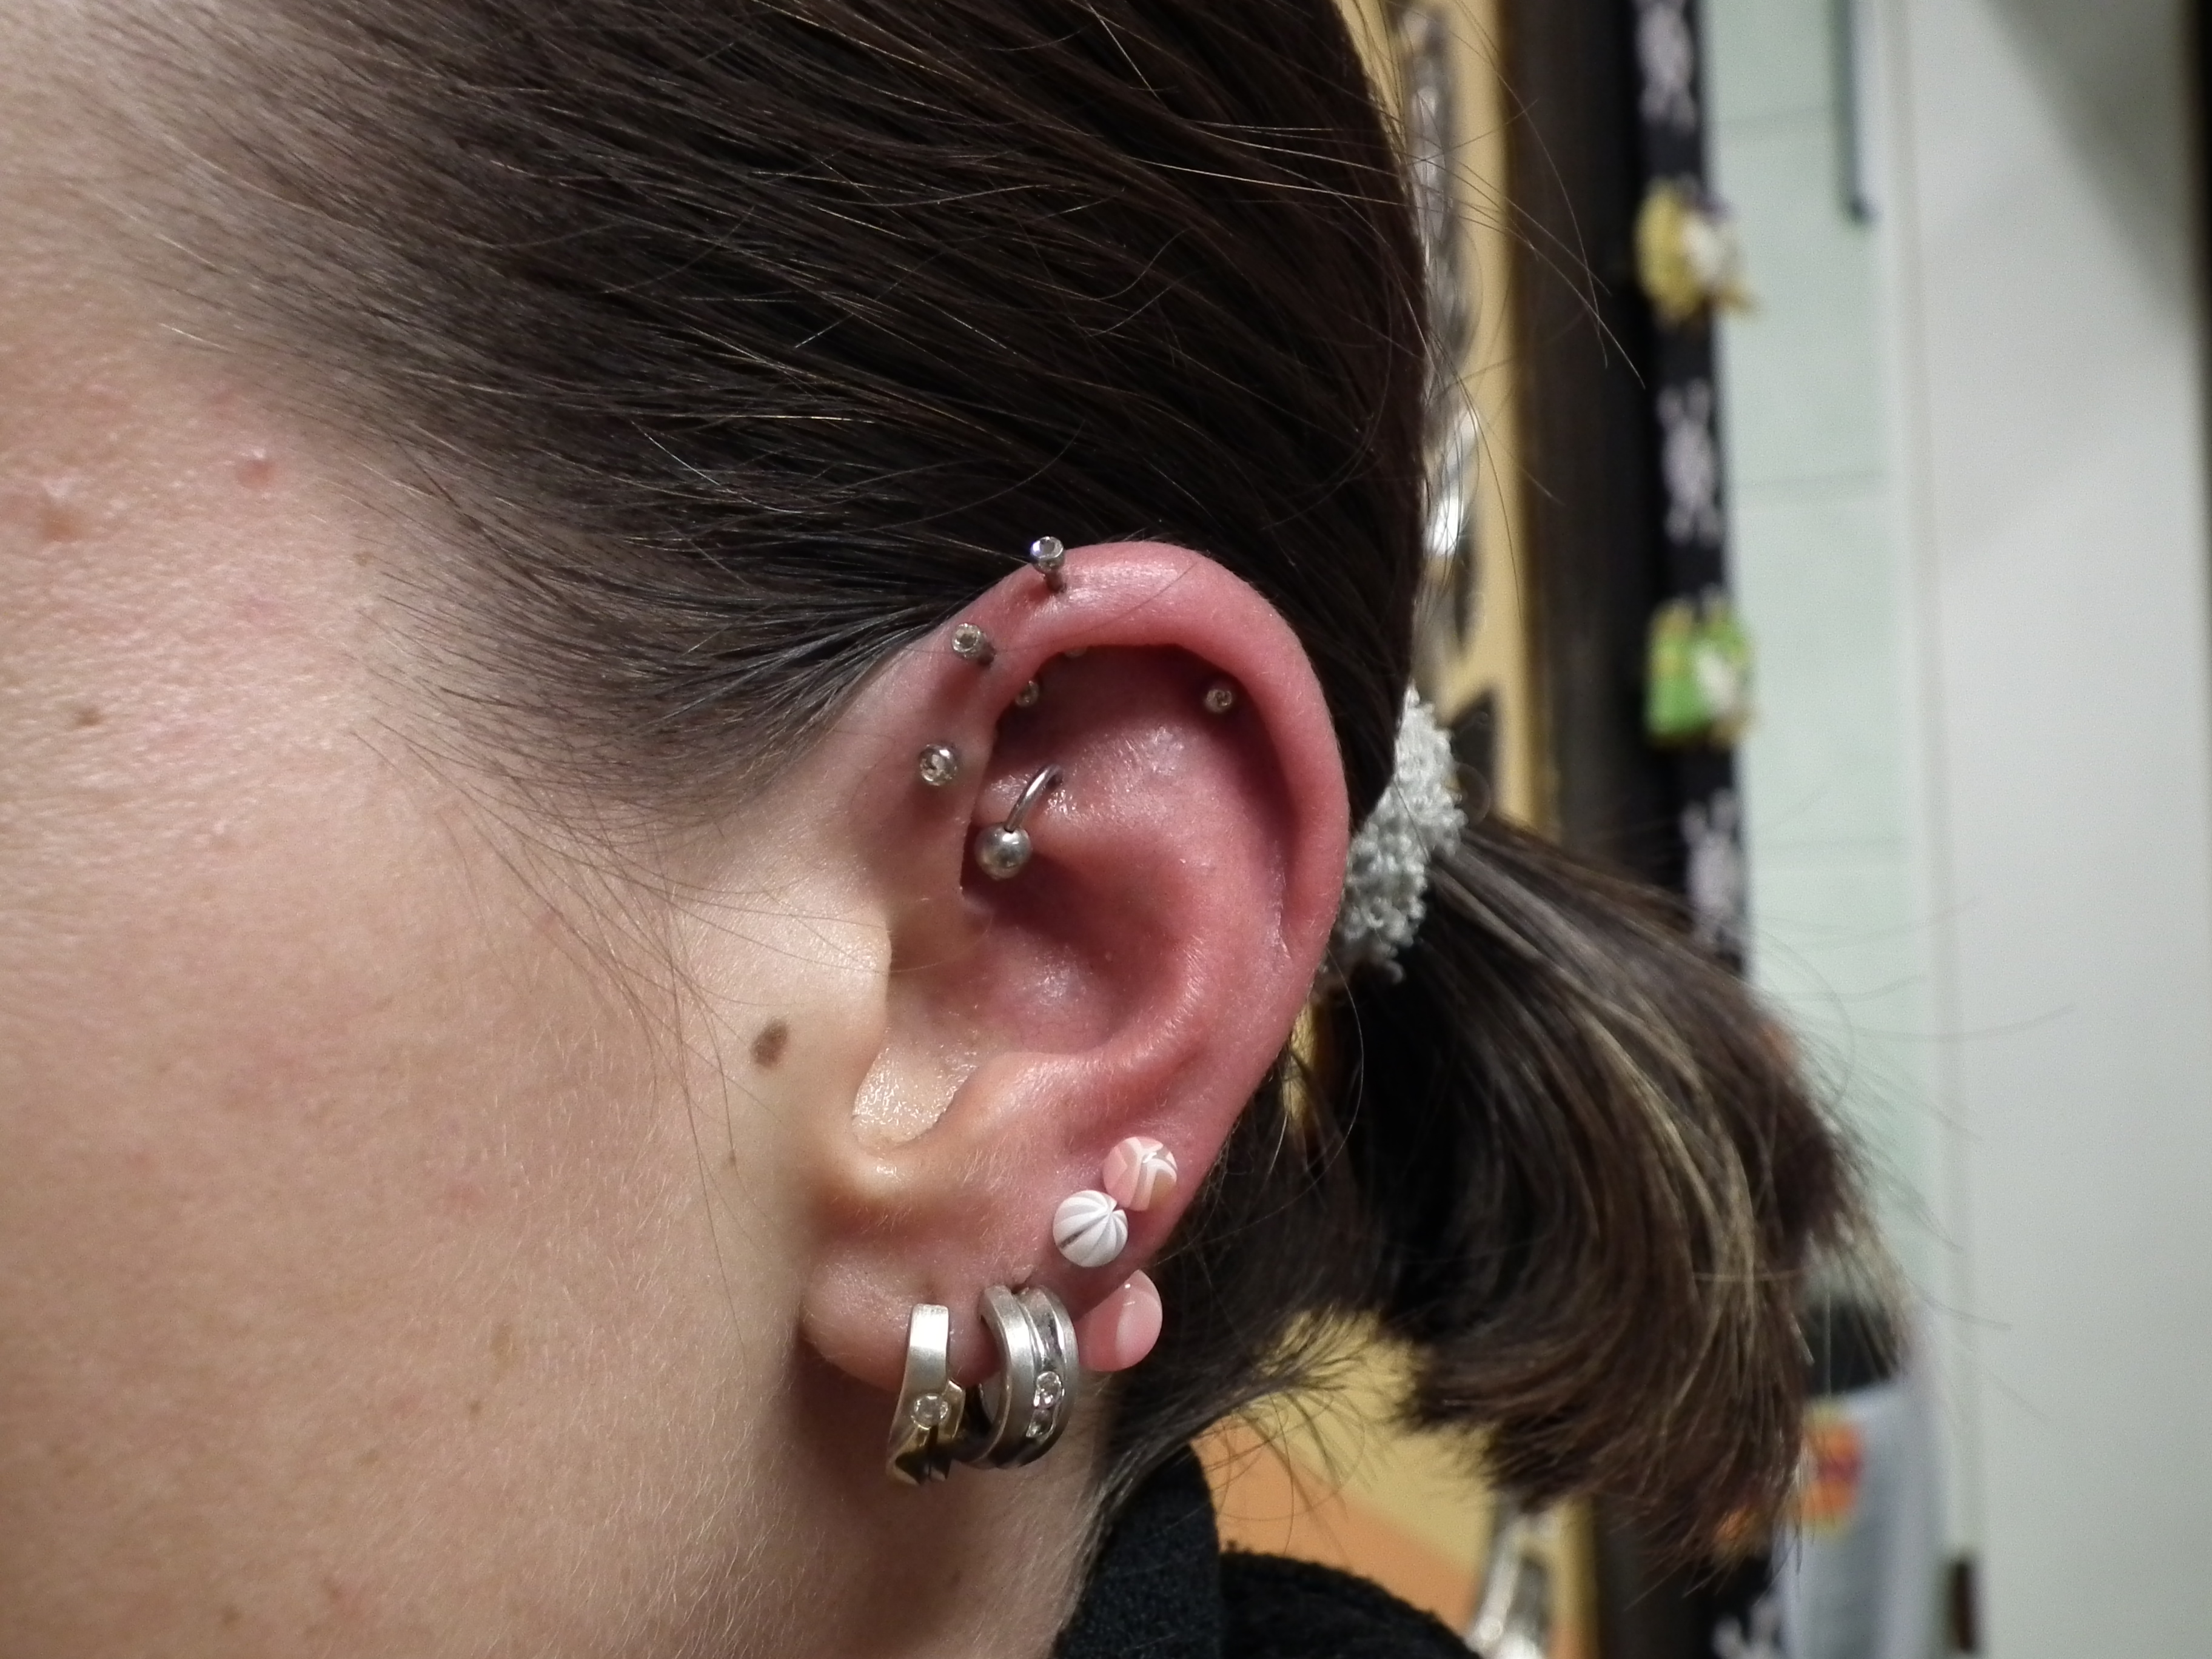 Piercing; Ohr; Tragus; Forward Helix